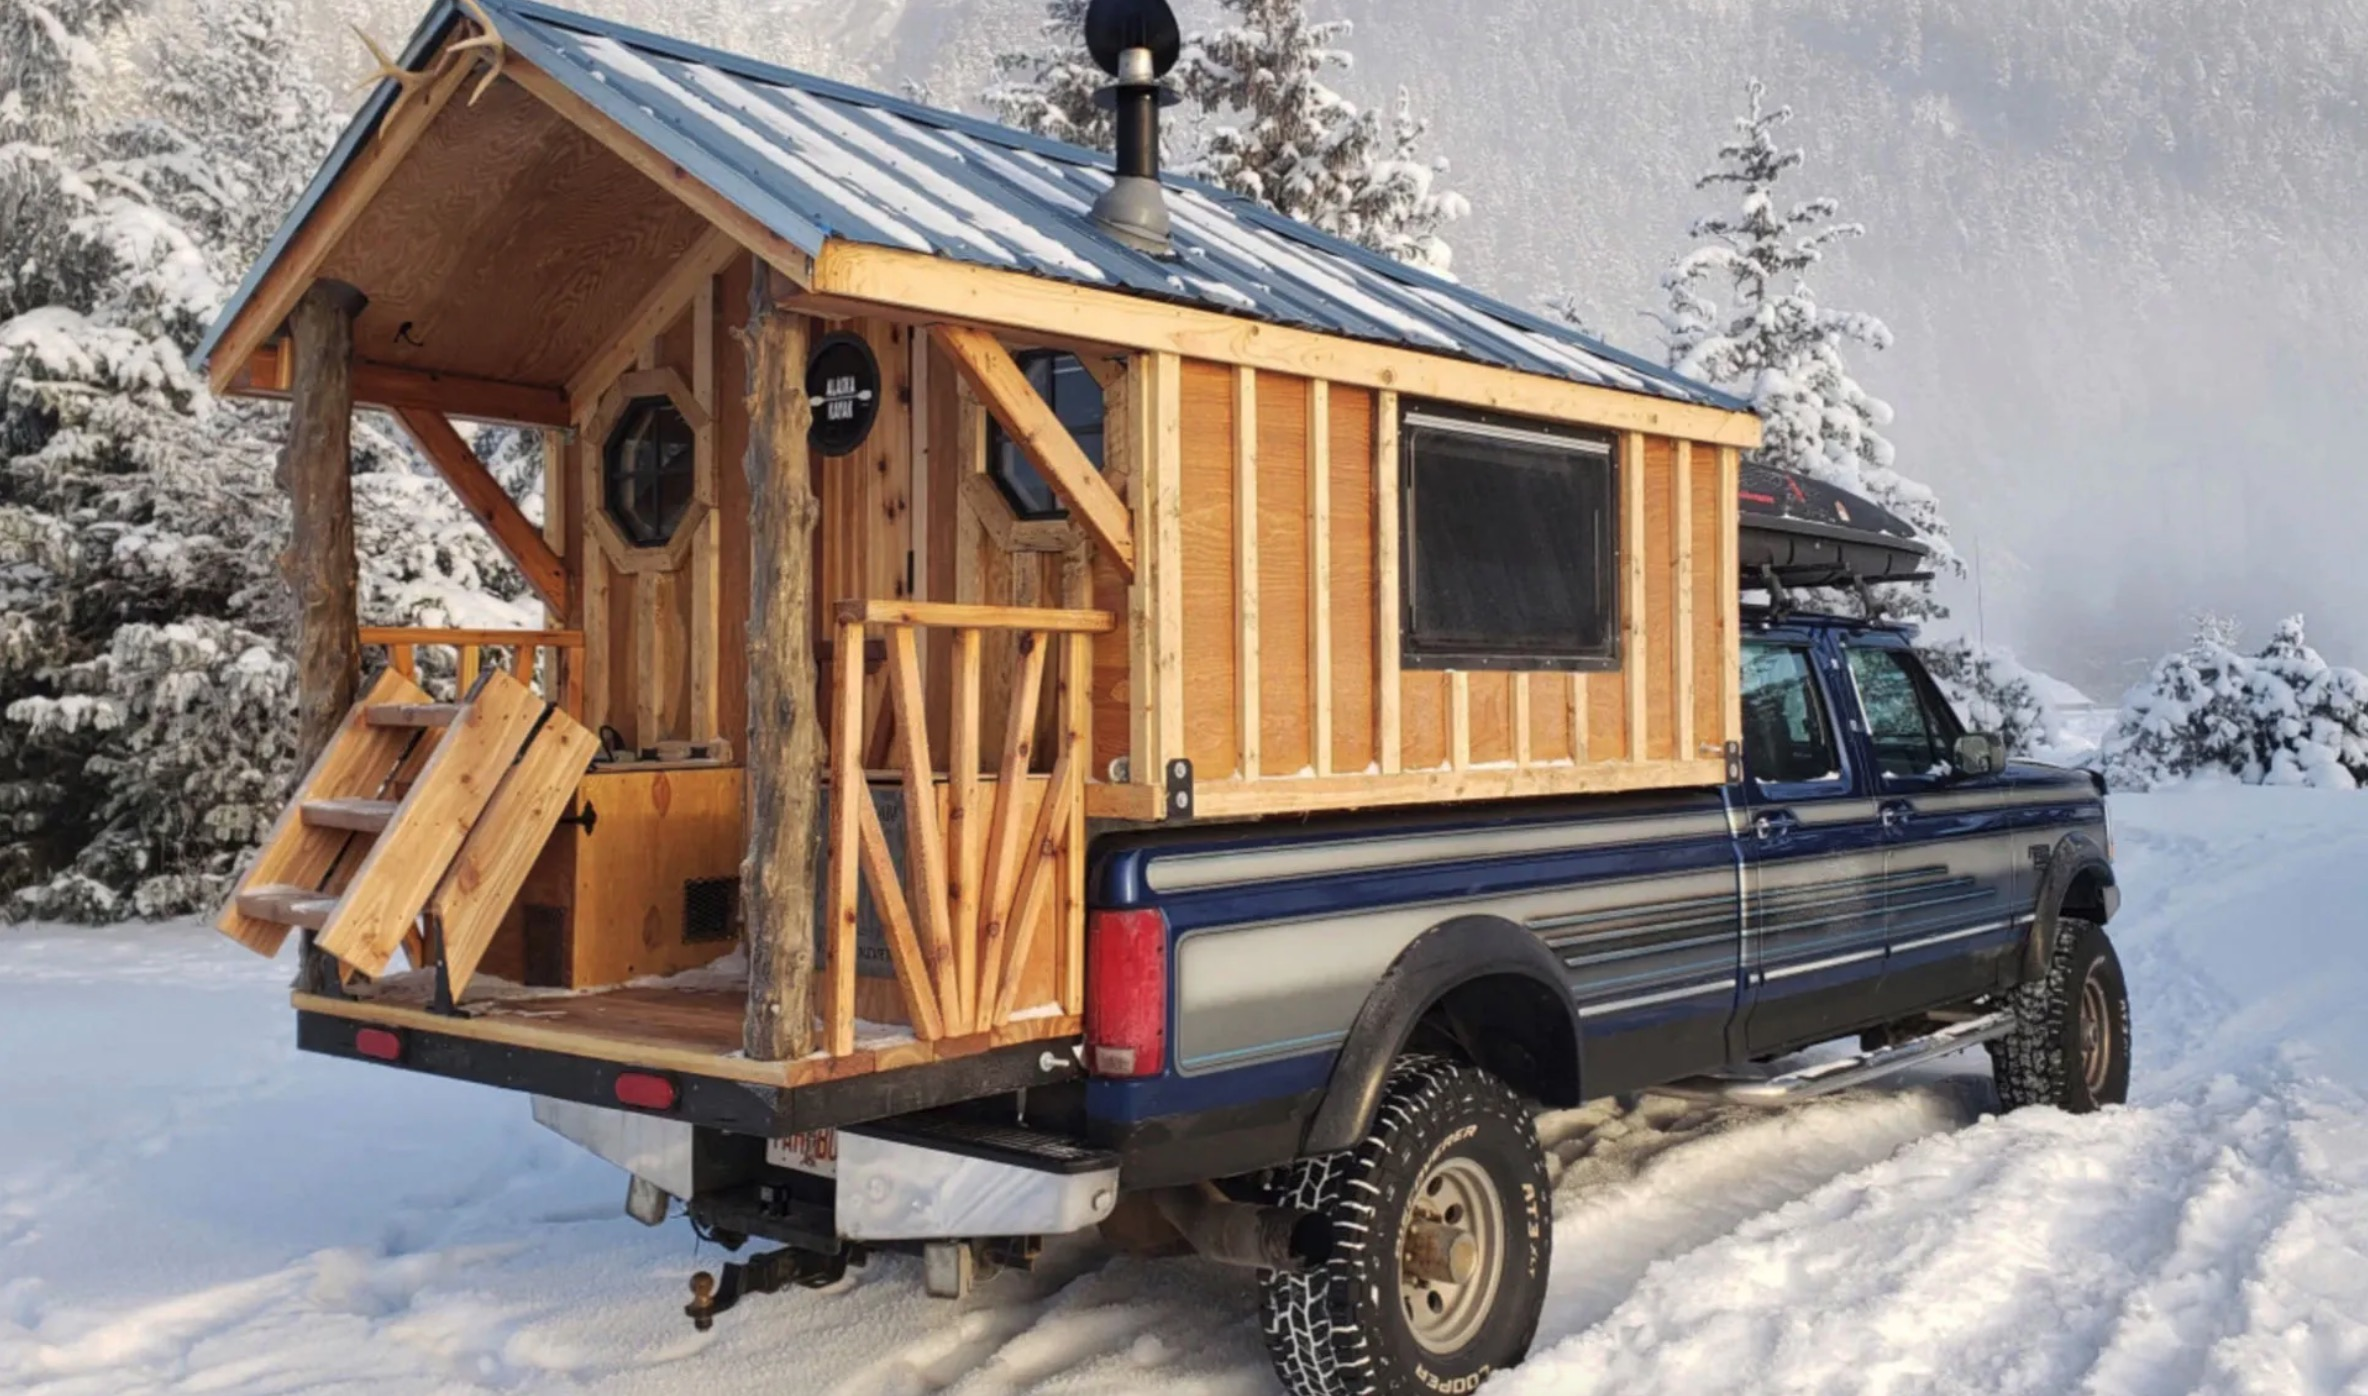 Alaskan Pioneer Builds Rolling Log Cabin On His Ford F-350